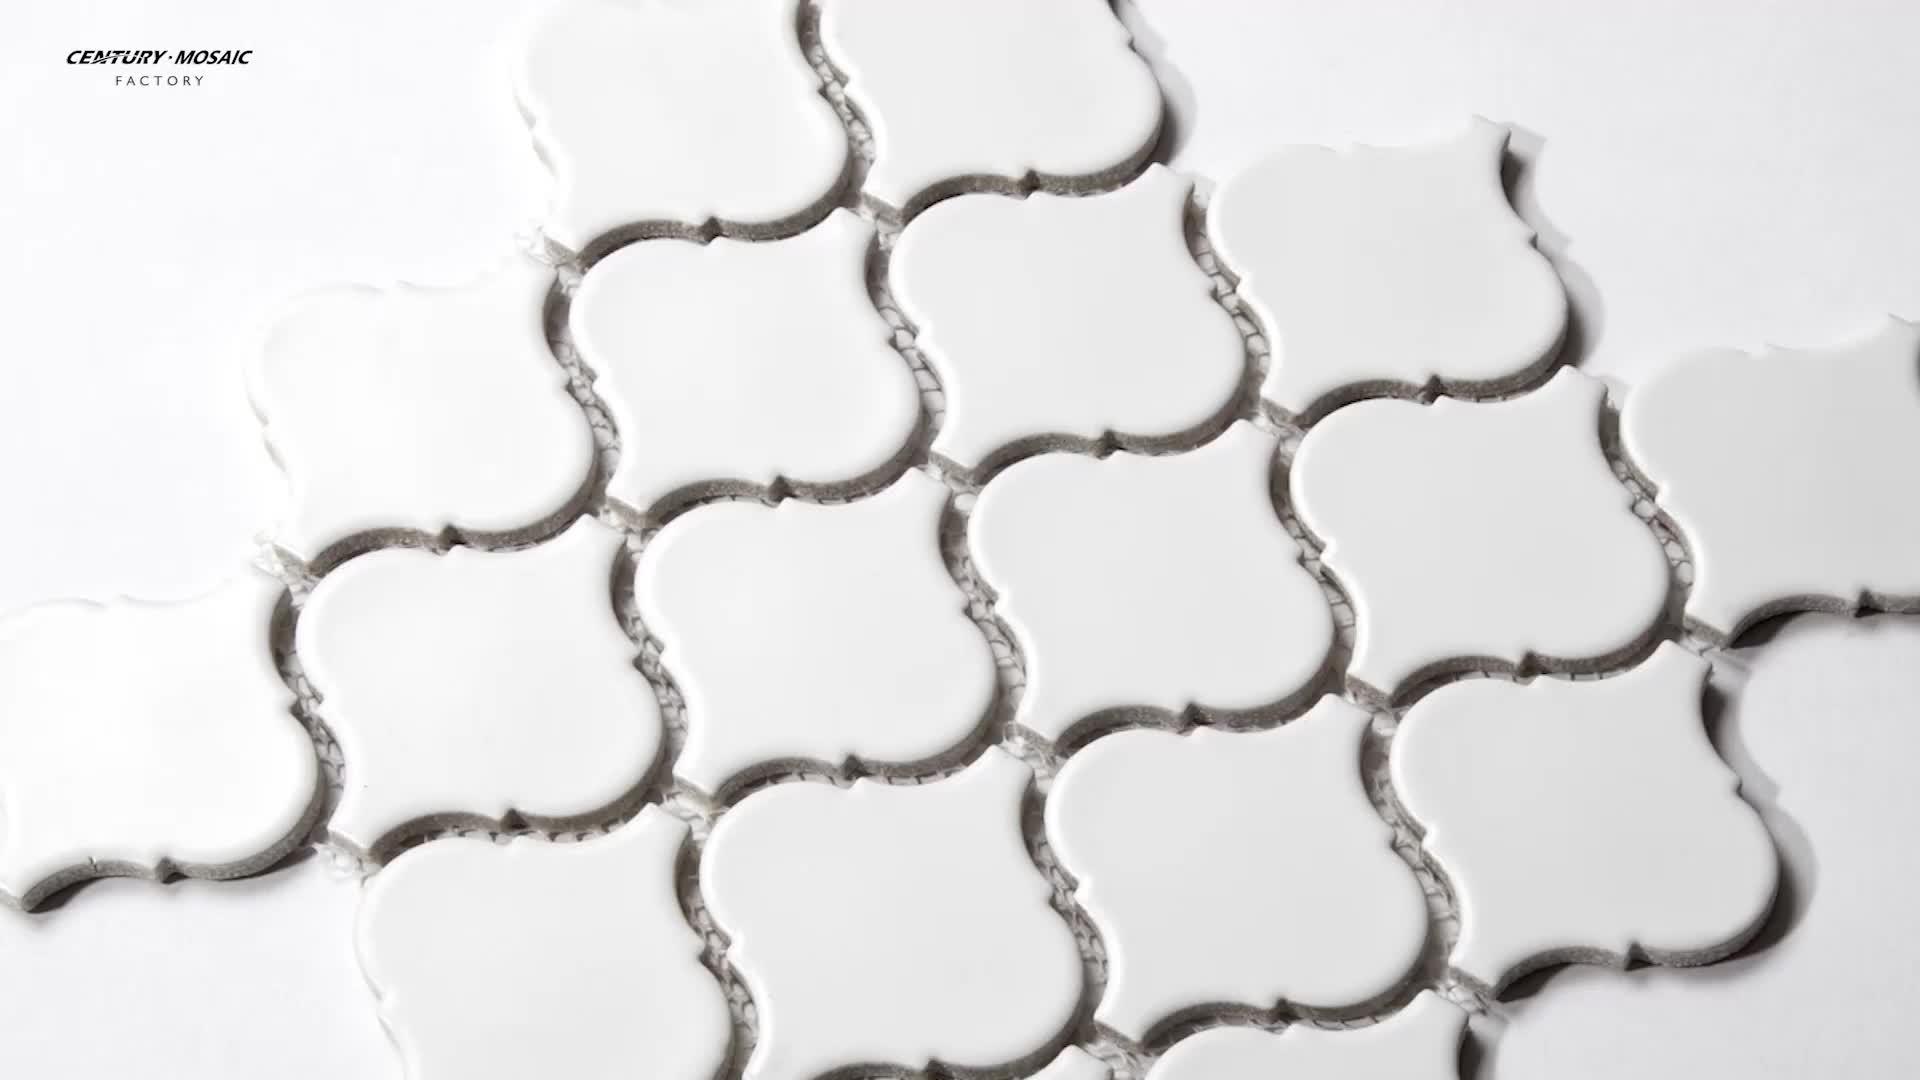 Arabesque Pattern Ceramic Mosaic Tiles For Wall Using